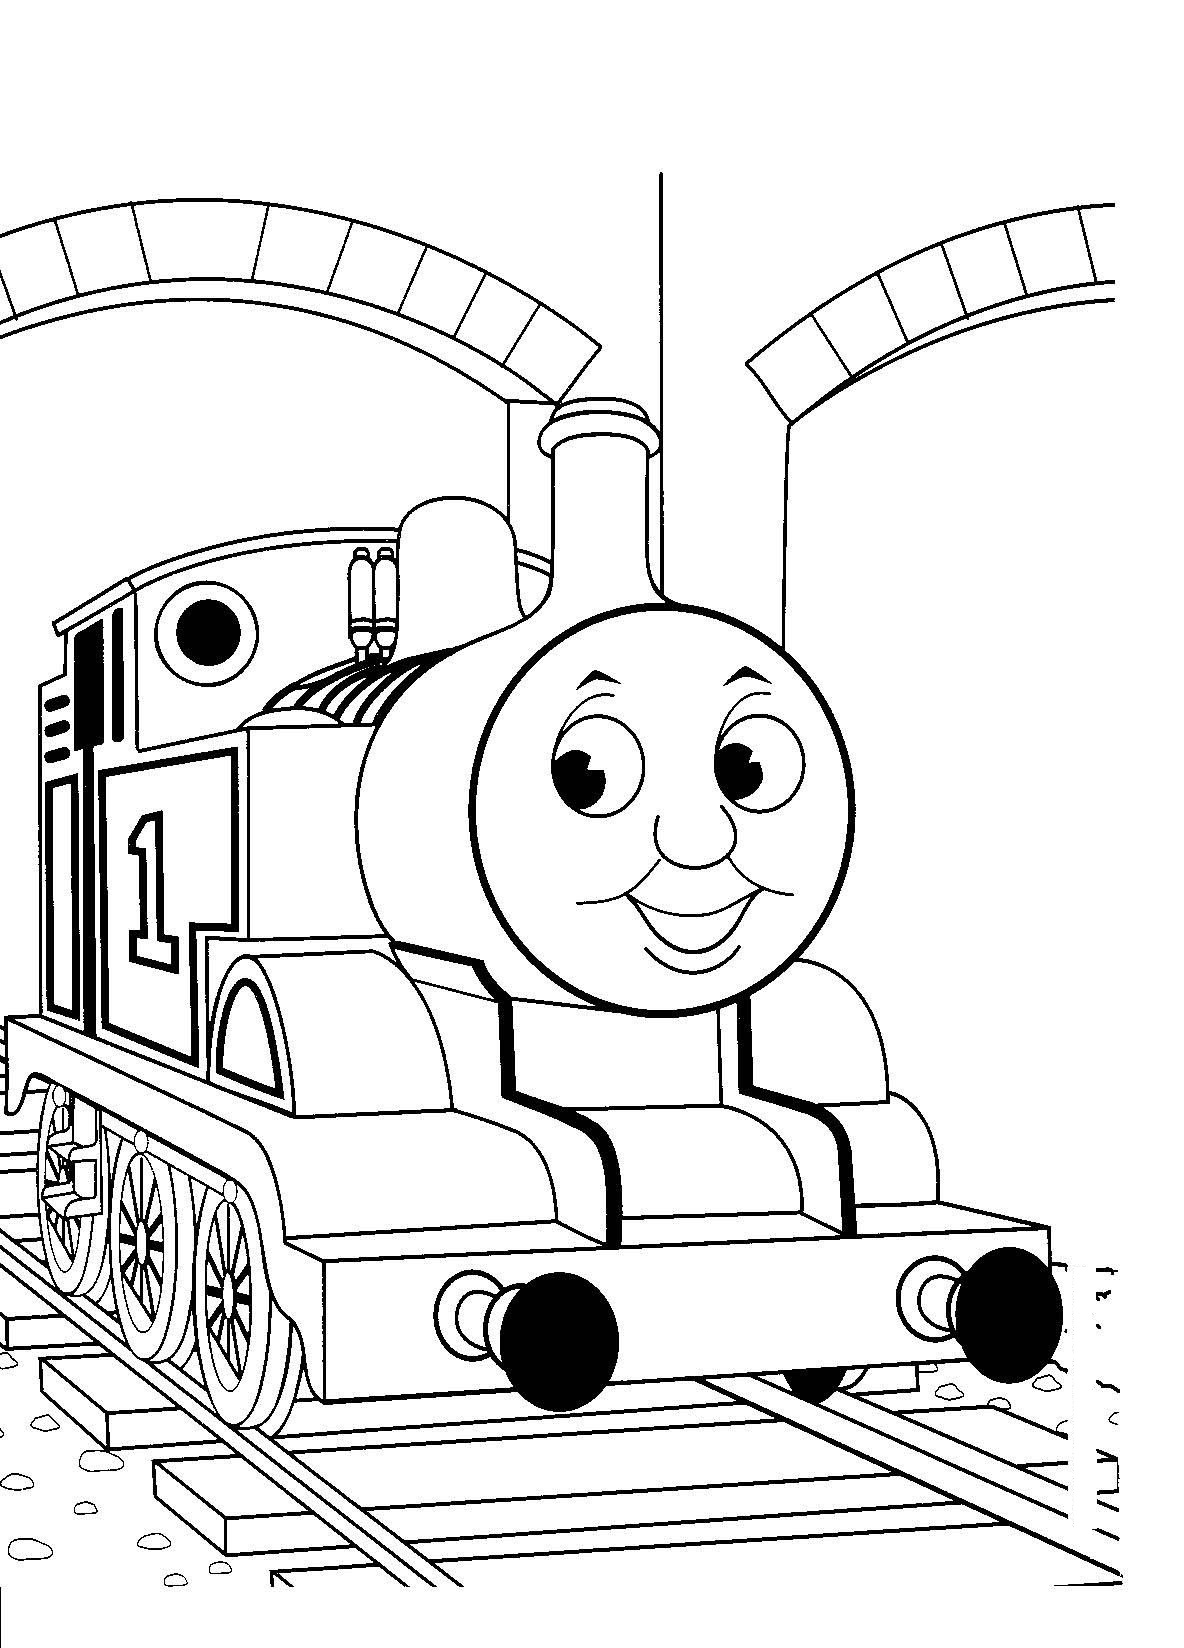 Coloring Pages Train Coloring Pages To Print free printable train coloring pages for kids thomas the pages